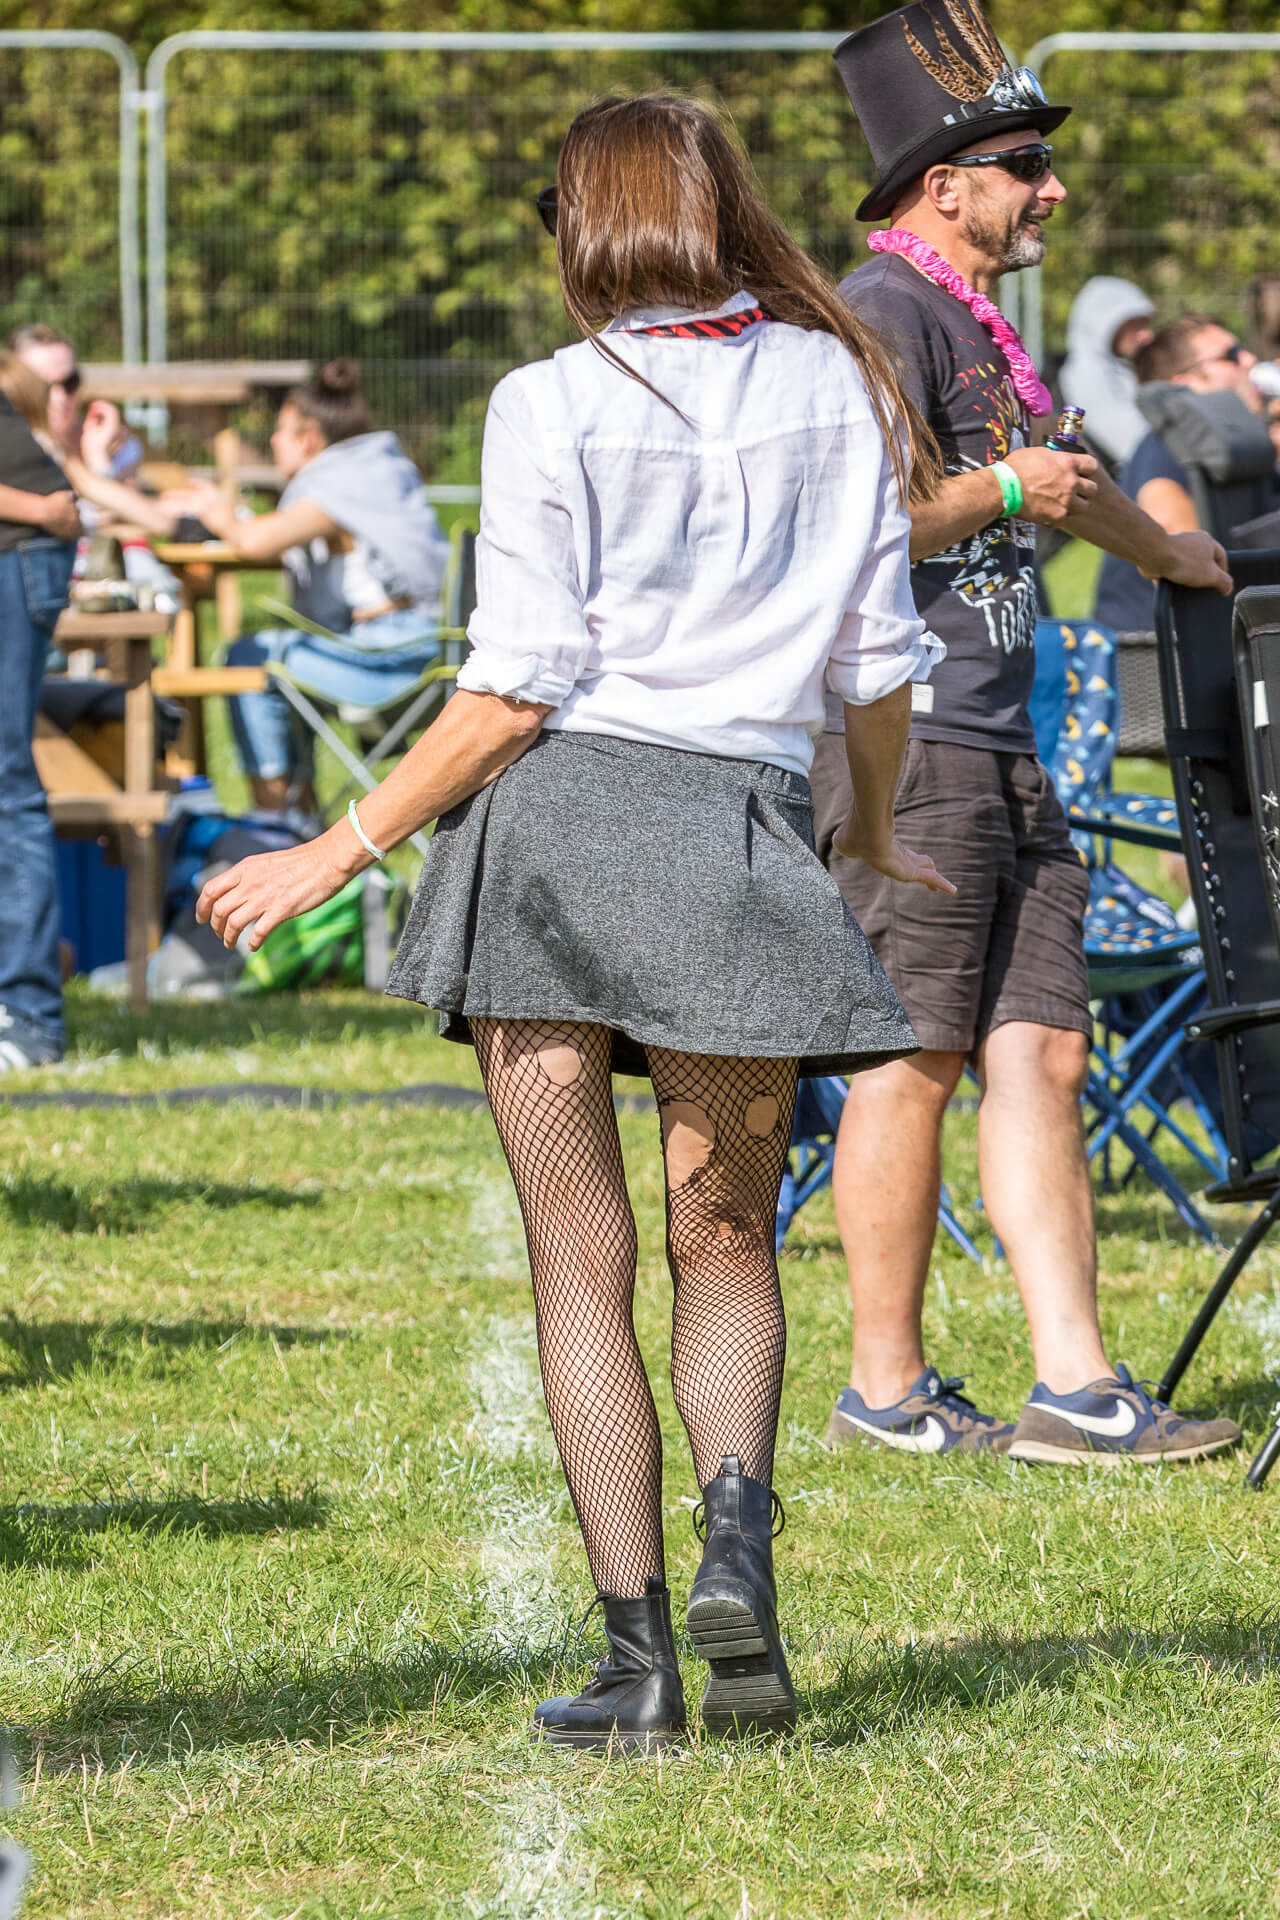 A full length colour image of a long brown haired female festival goer taken at The Bredon Cider Festival 2020 as she dances away from the camera. She wears a white shirt, with rolled up sleeves, a red & black tie, a short grey skirt, and torn fishnet tights, along with black ankle boots.